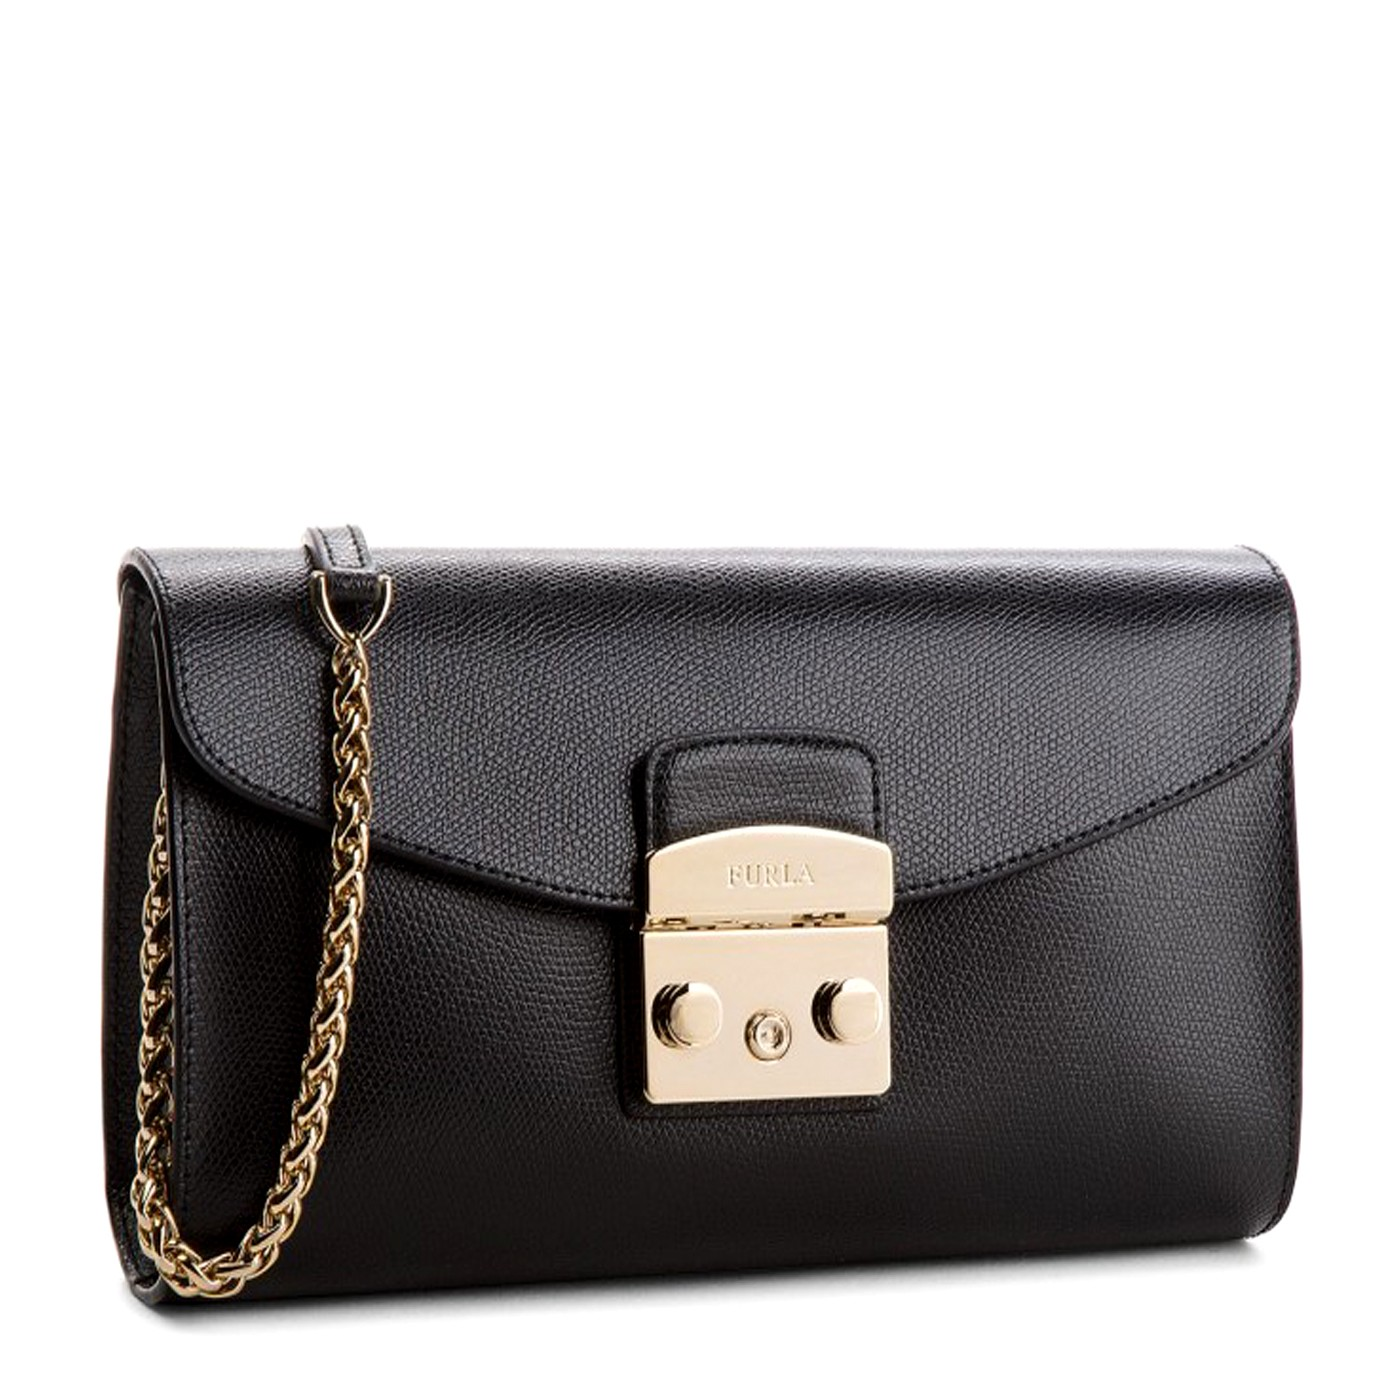 FURLA METROPOLIS Leather Shoulder bag with chain ONYX 8034022061284 ... a0ed2d8bdd